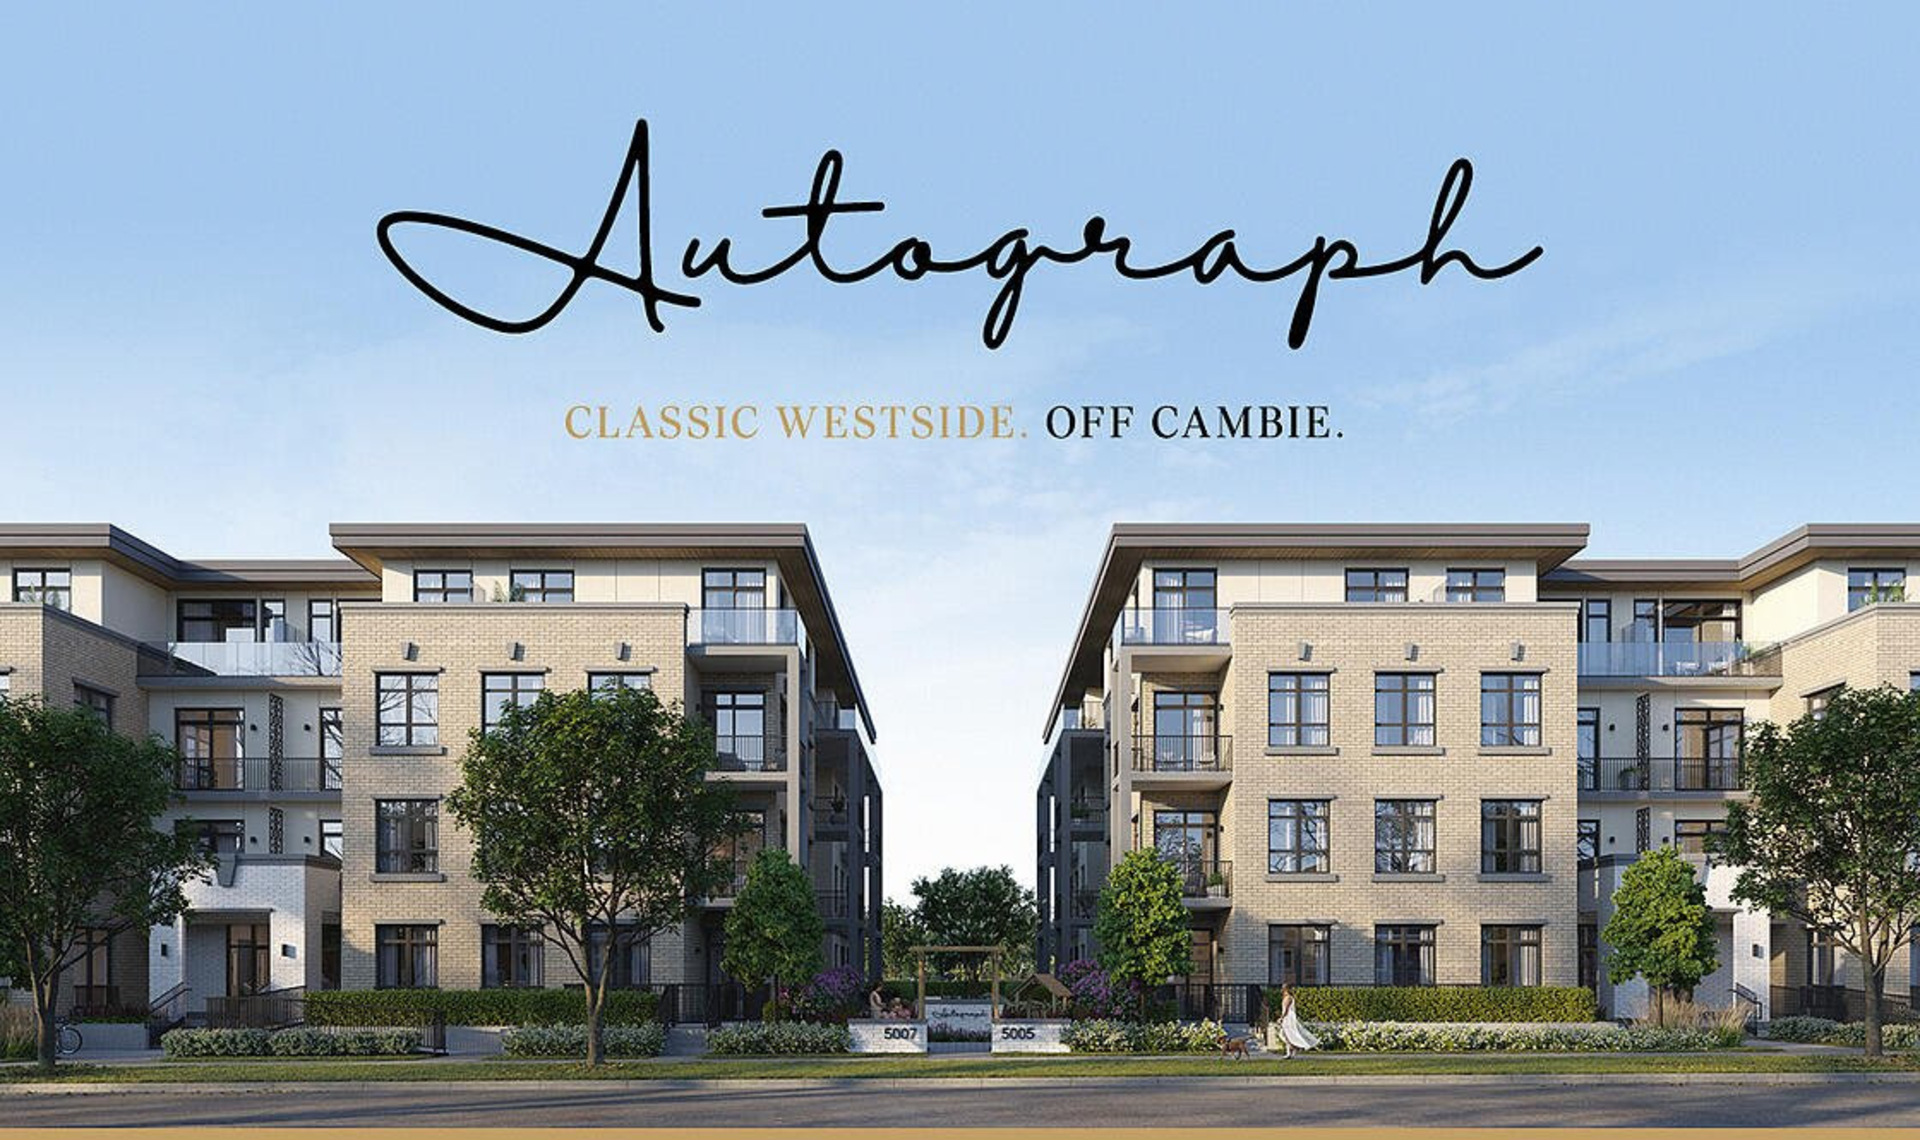 unnamed-6 at Autograph (5007 Ash Street, Cambie, Vancouver West)